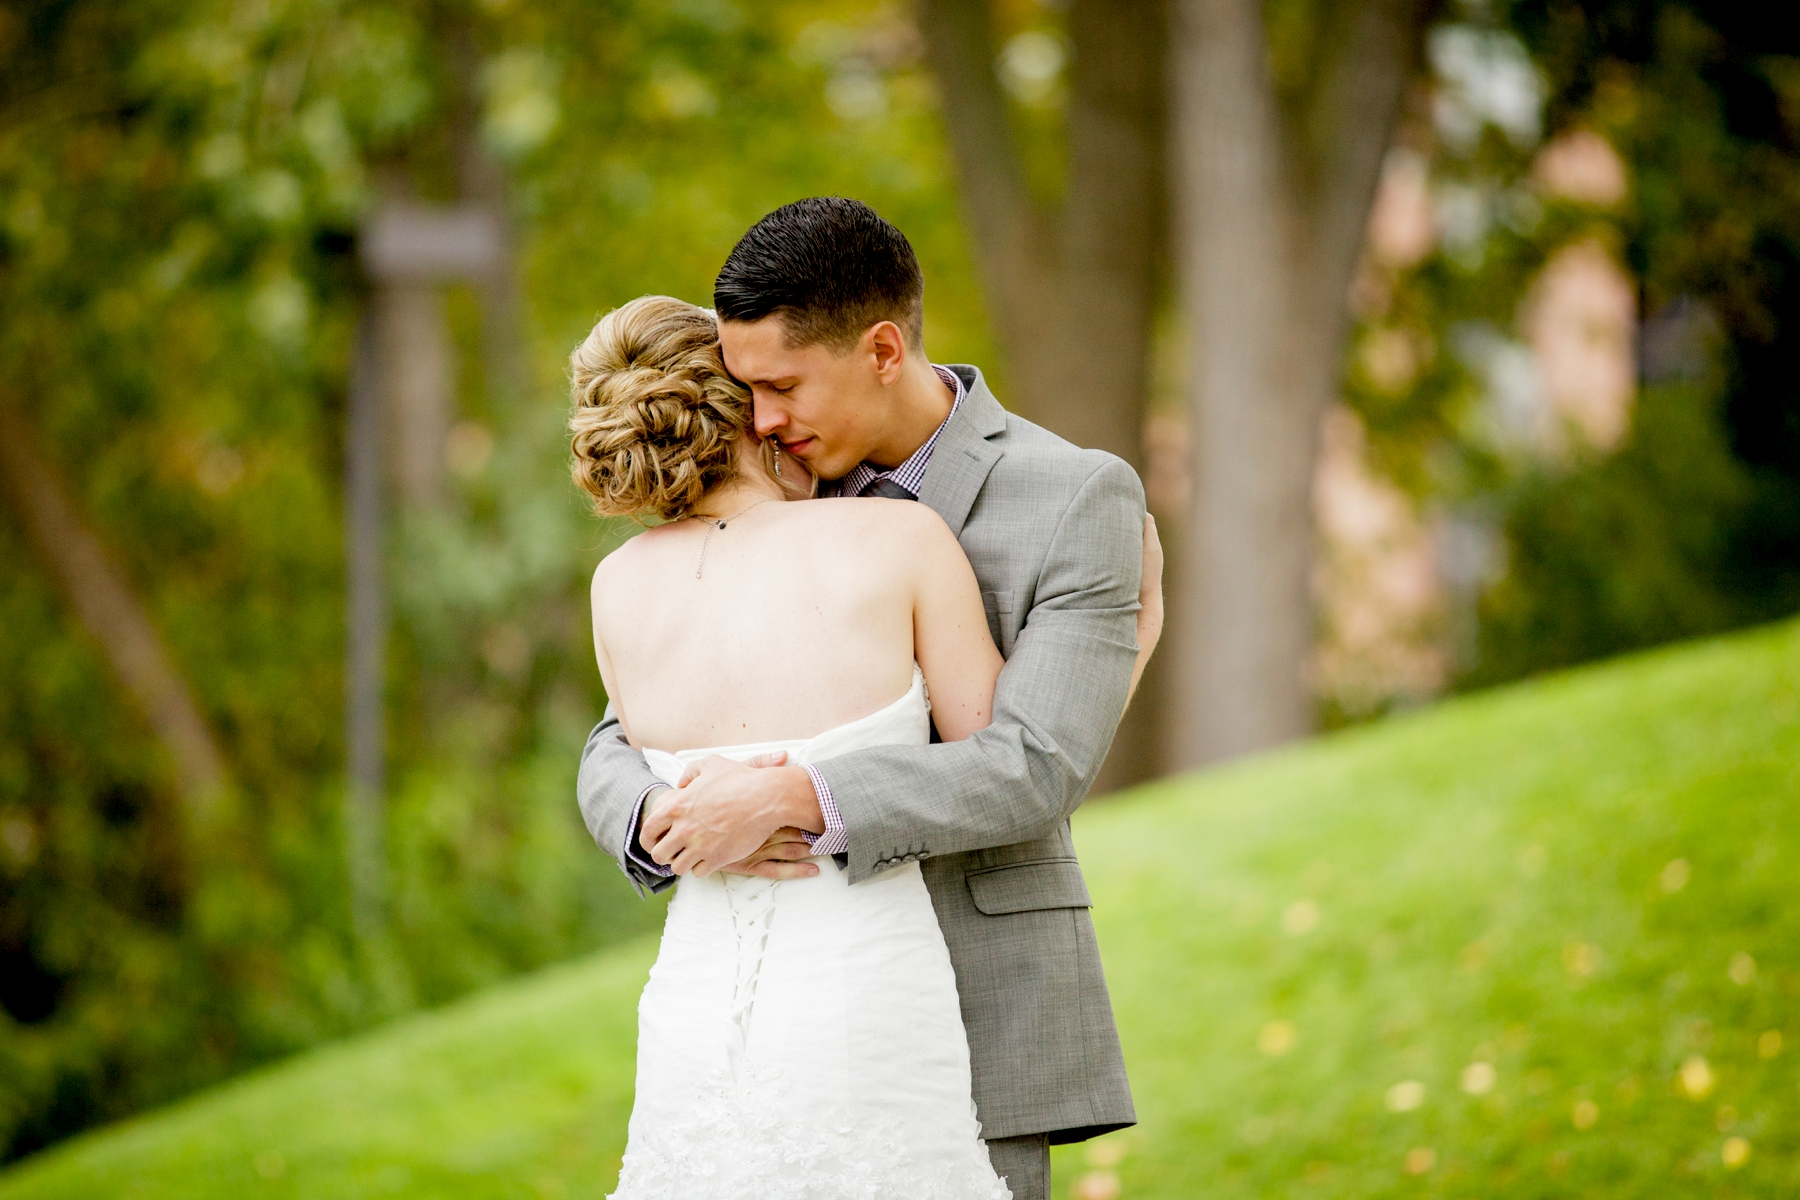 Brandon_Shafer_Photography_Kristen_Corey_Downtown_Grand_Rapids_Fall_Wedding0017.JPG